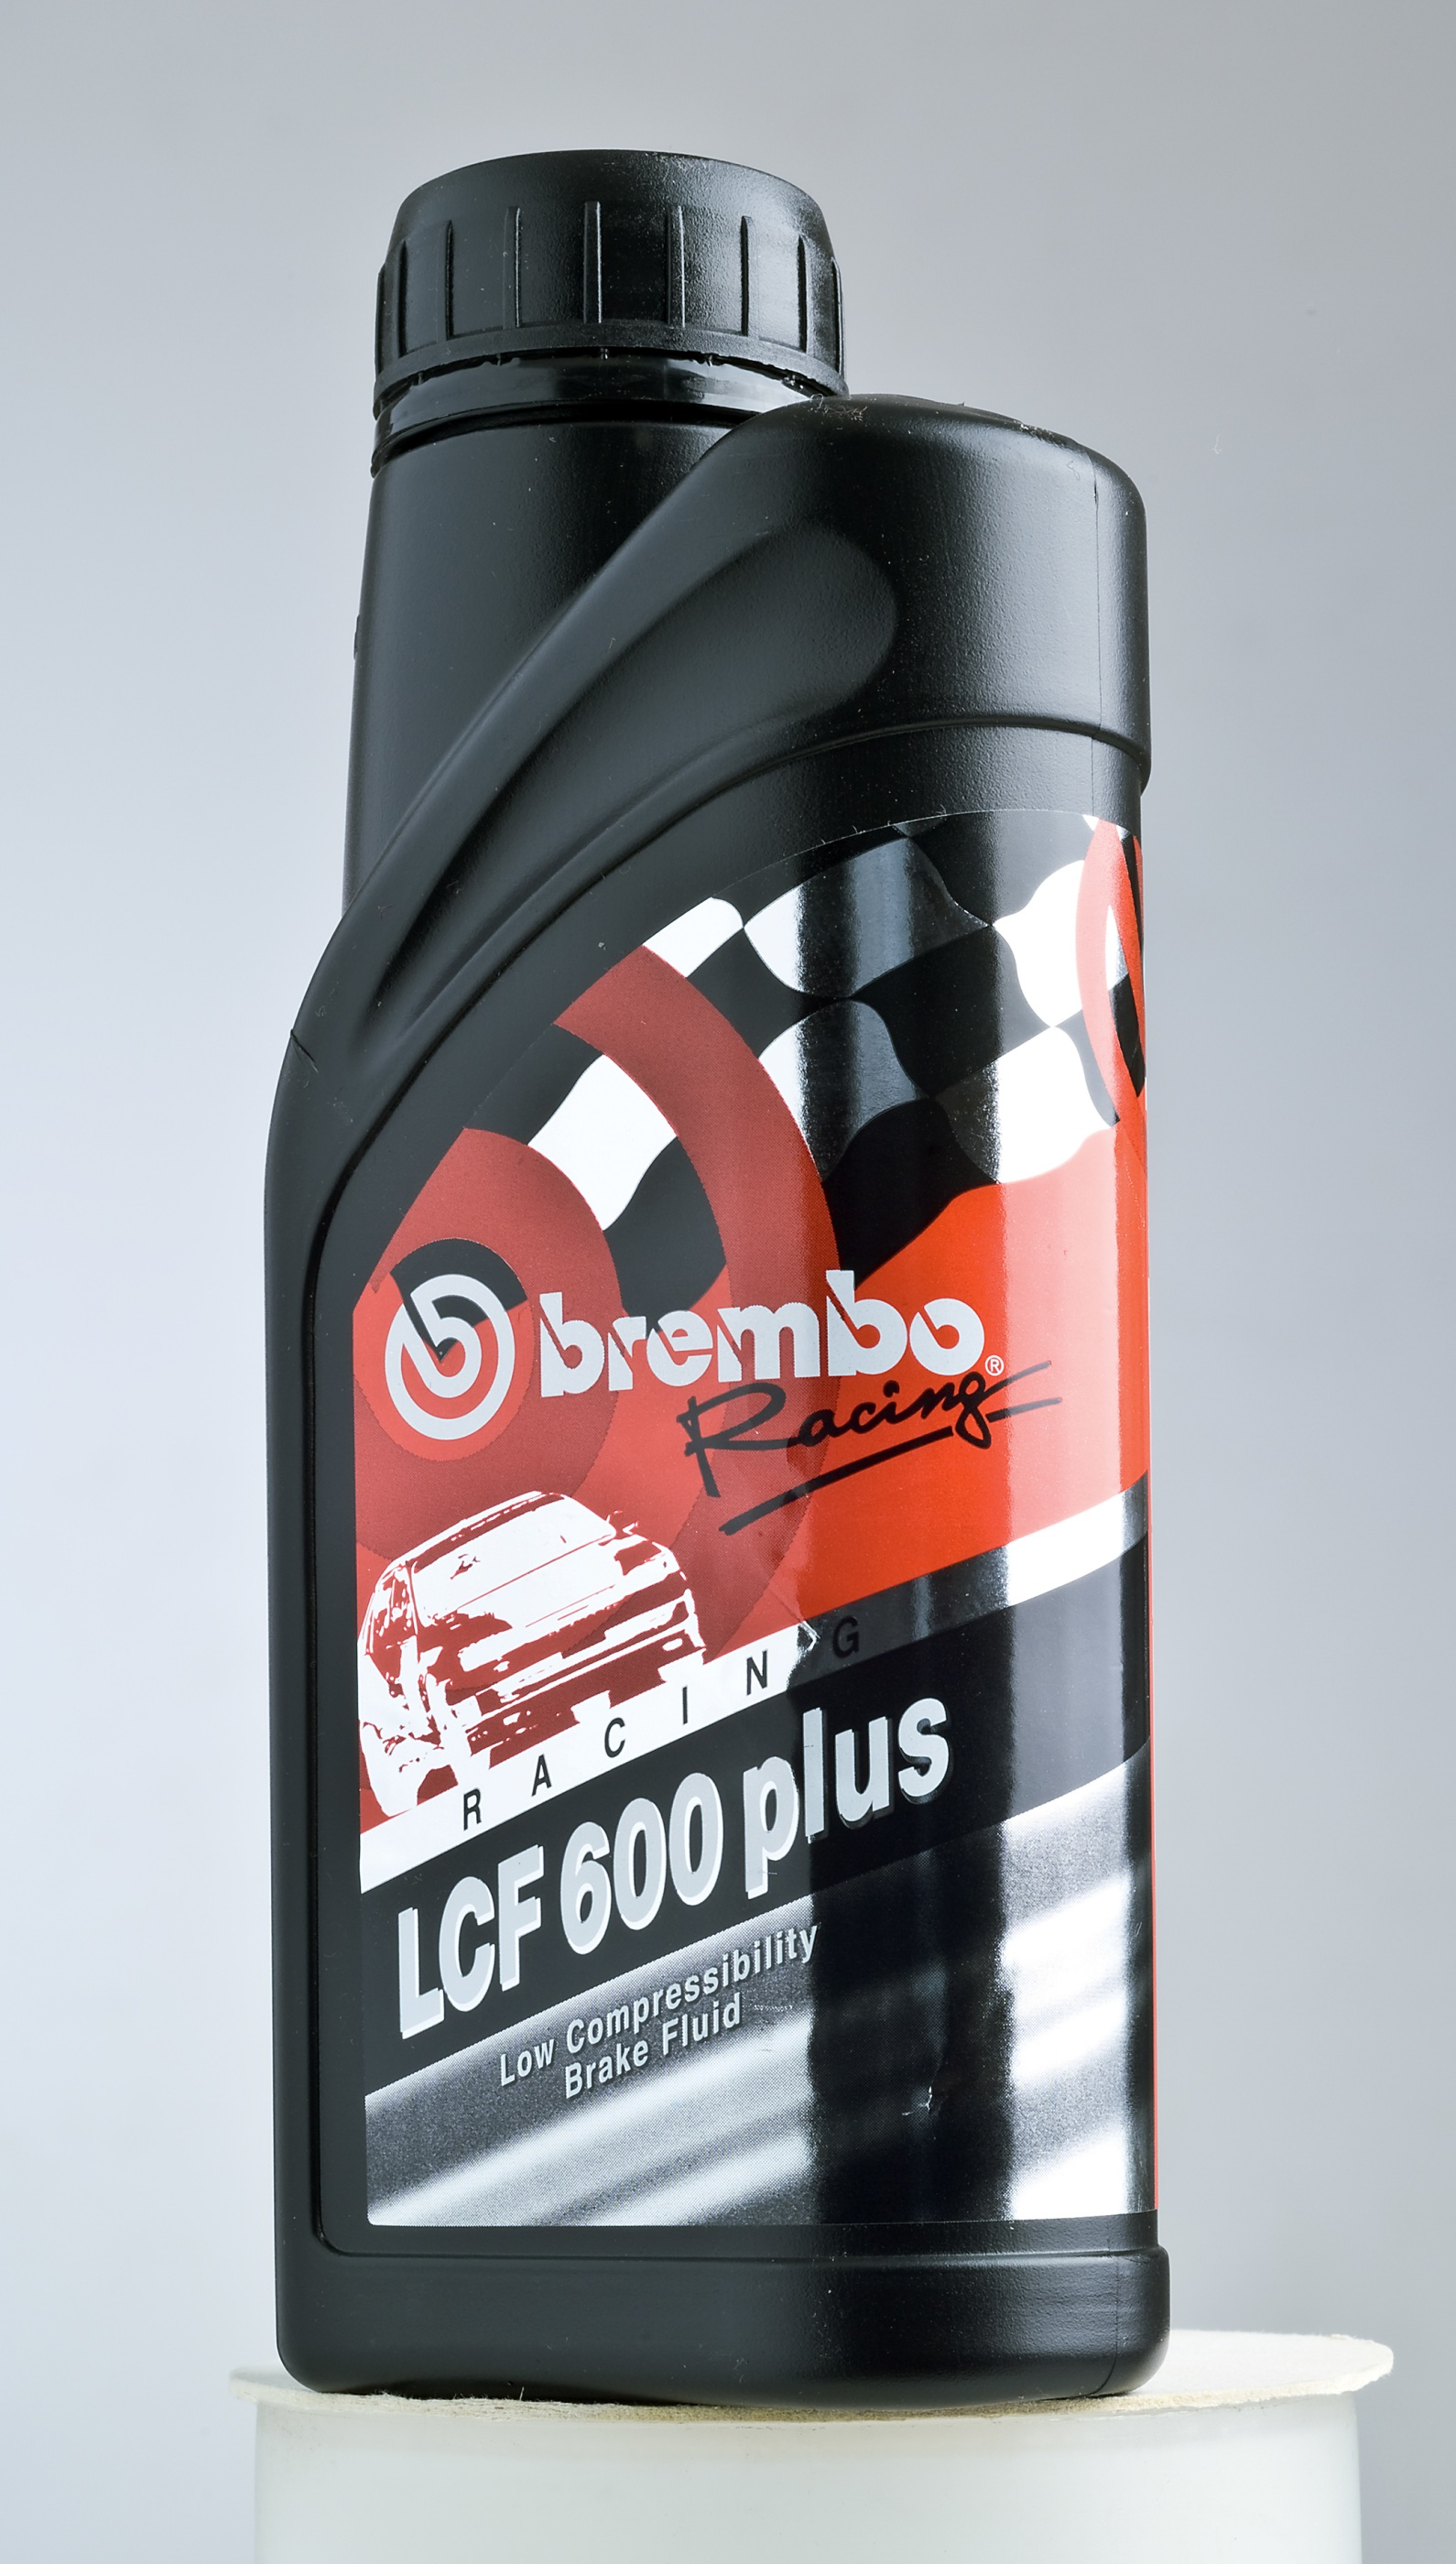 04816411 Brembo Brake Fluid LCF